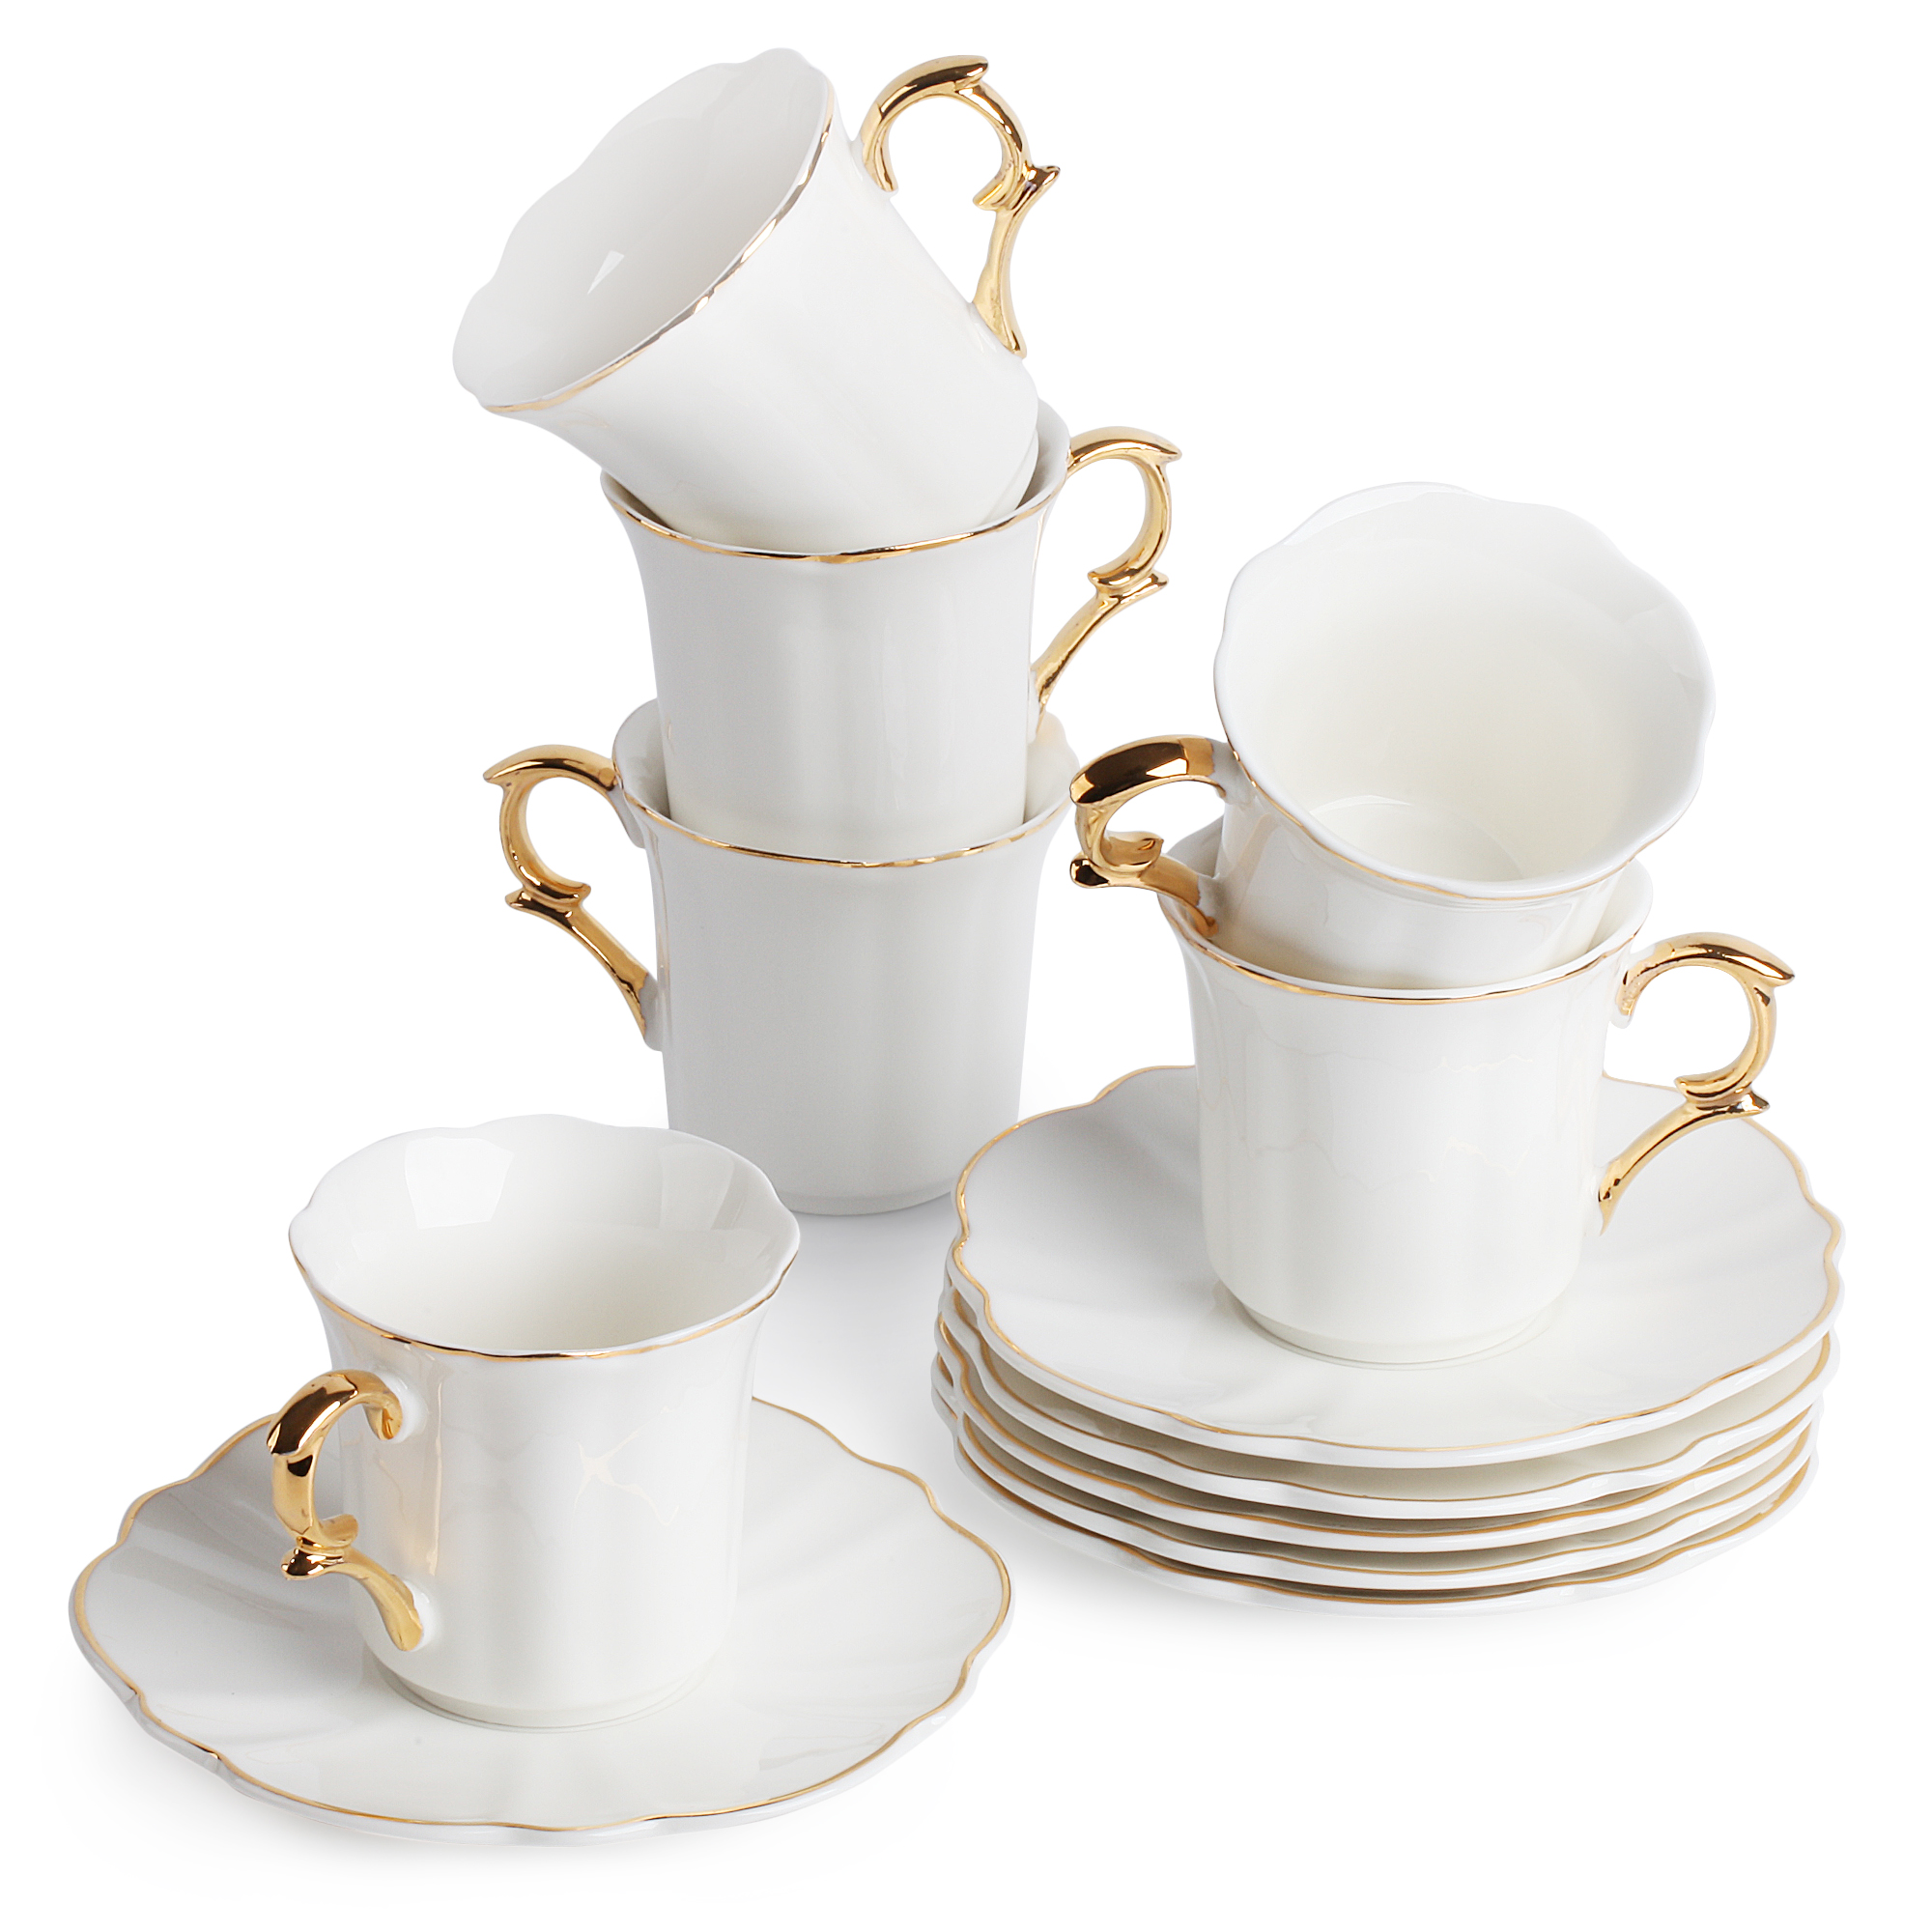 And Espresso Cups Btät BoxSmall Demitasse2 Of 6 Gift Coffee Gold SetTurkish CupsWhite 4 SaucersSet OzWith Cup Trim XZkuPi